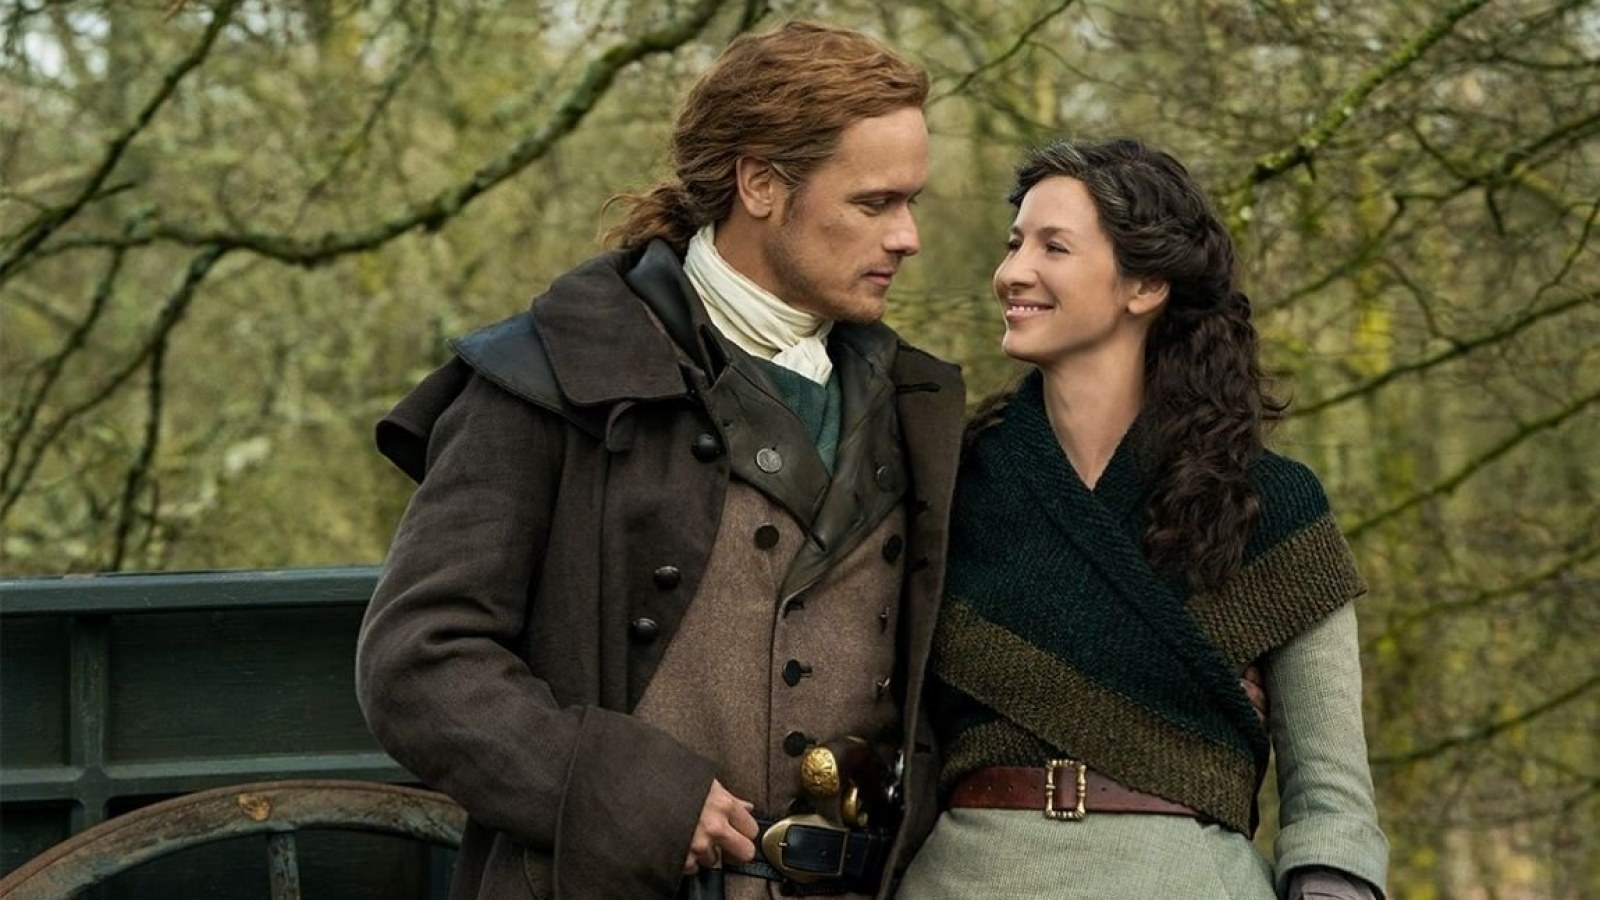 Outlander Season 5 Release Date Cast Trailer Plot When Does The New Season Come Out On Starz